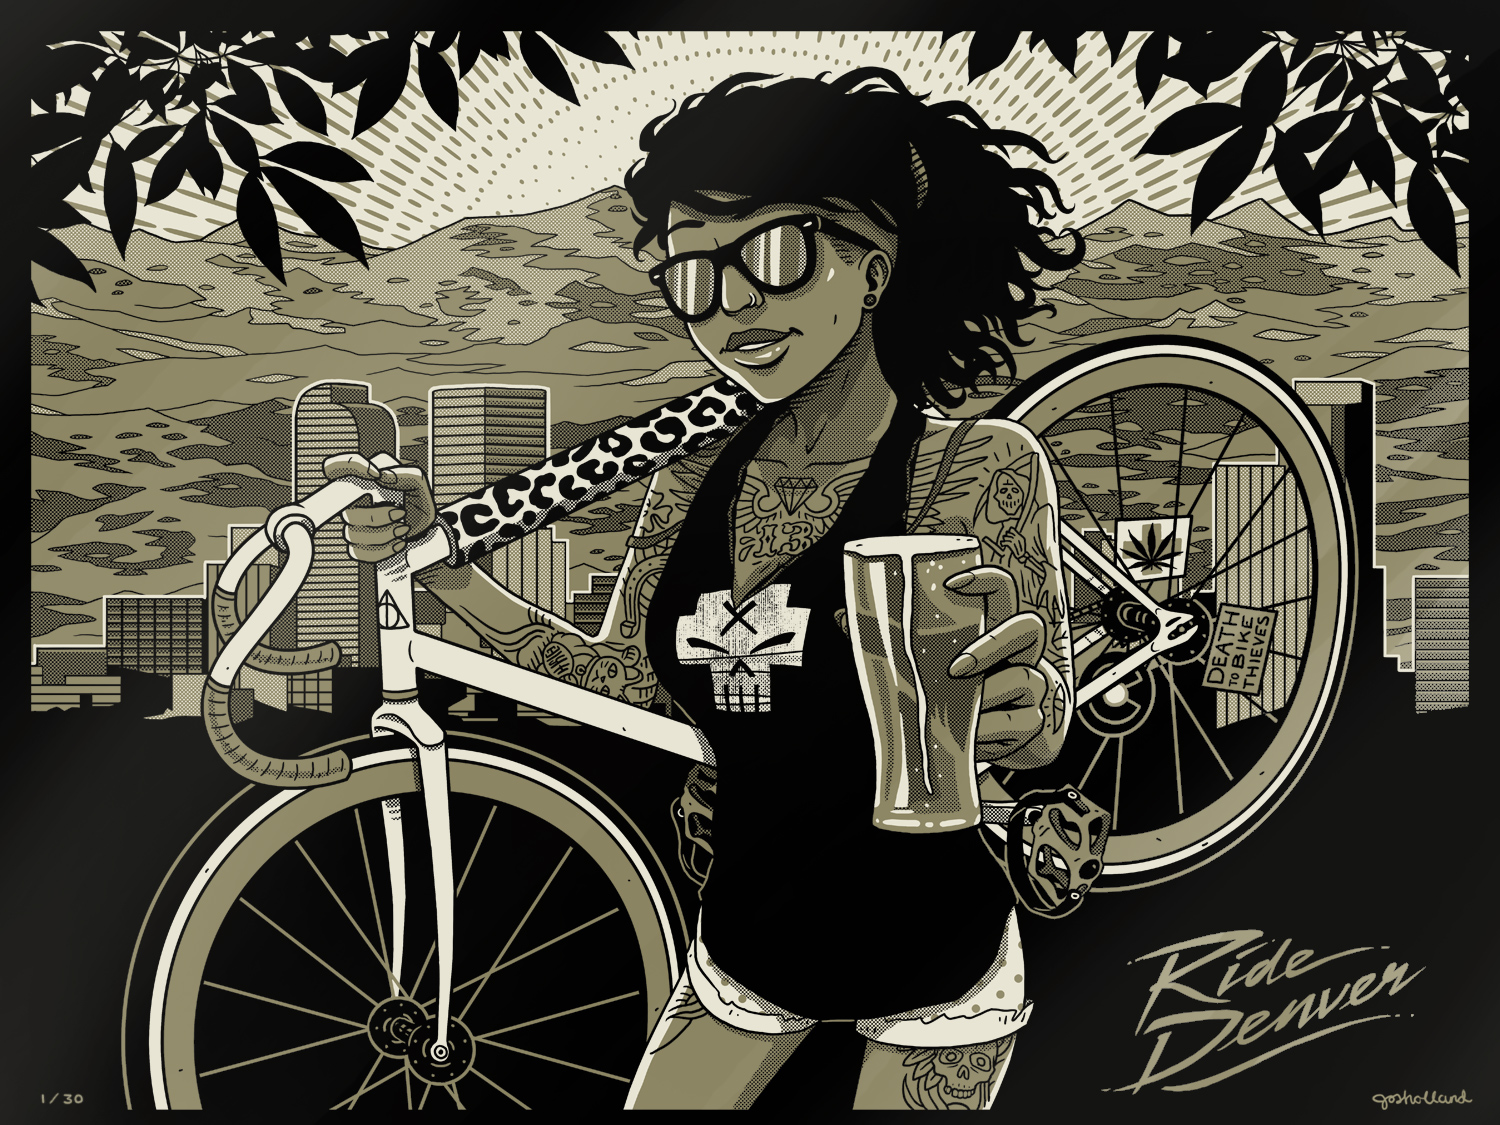 09_ride_denver_poster_josh_holland.jpg